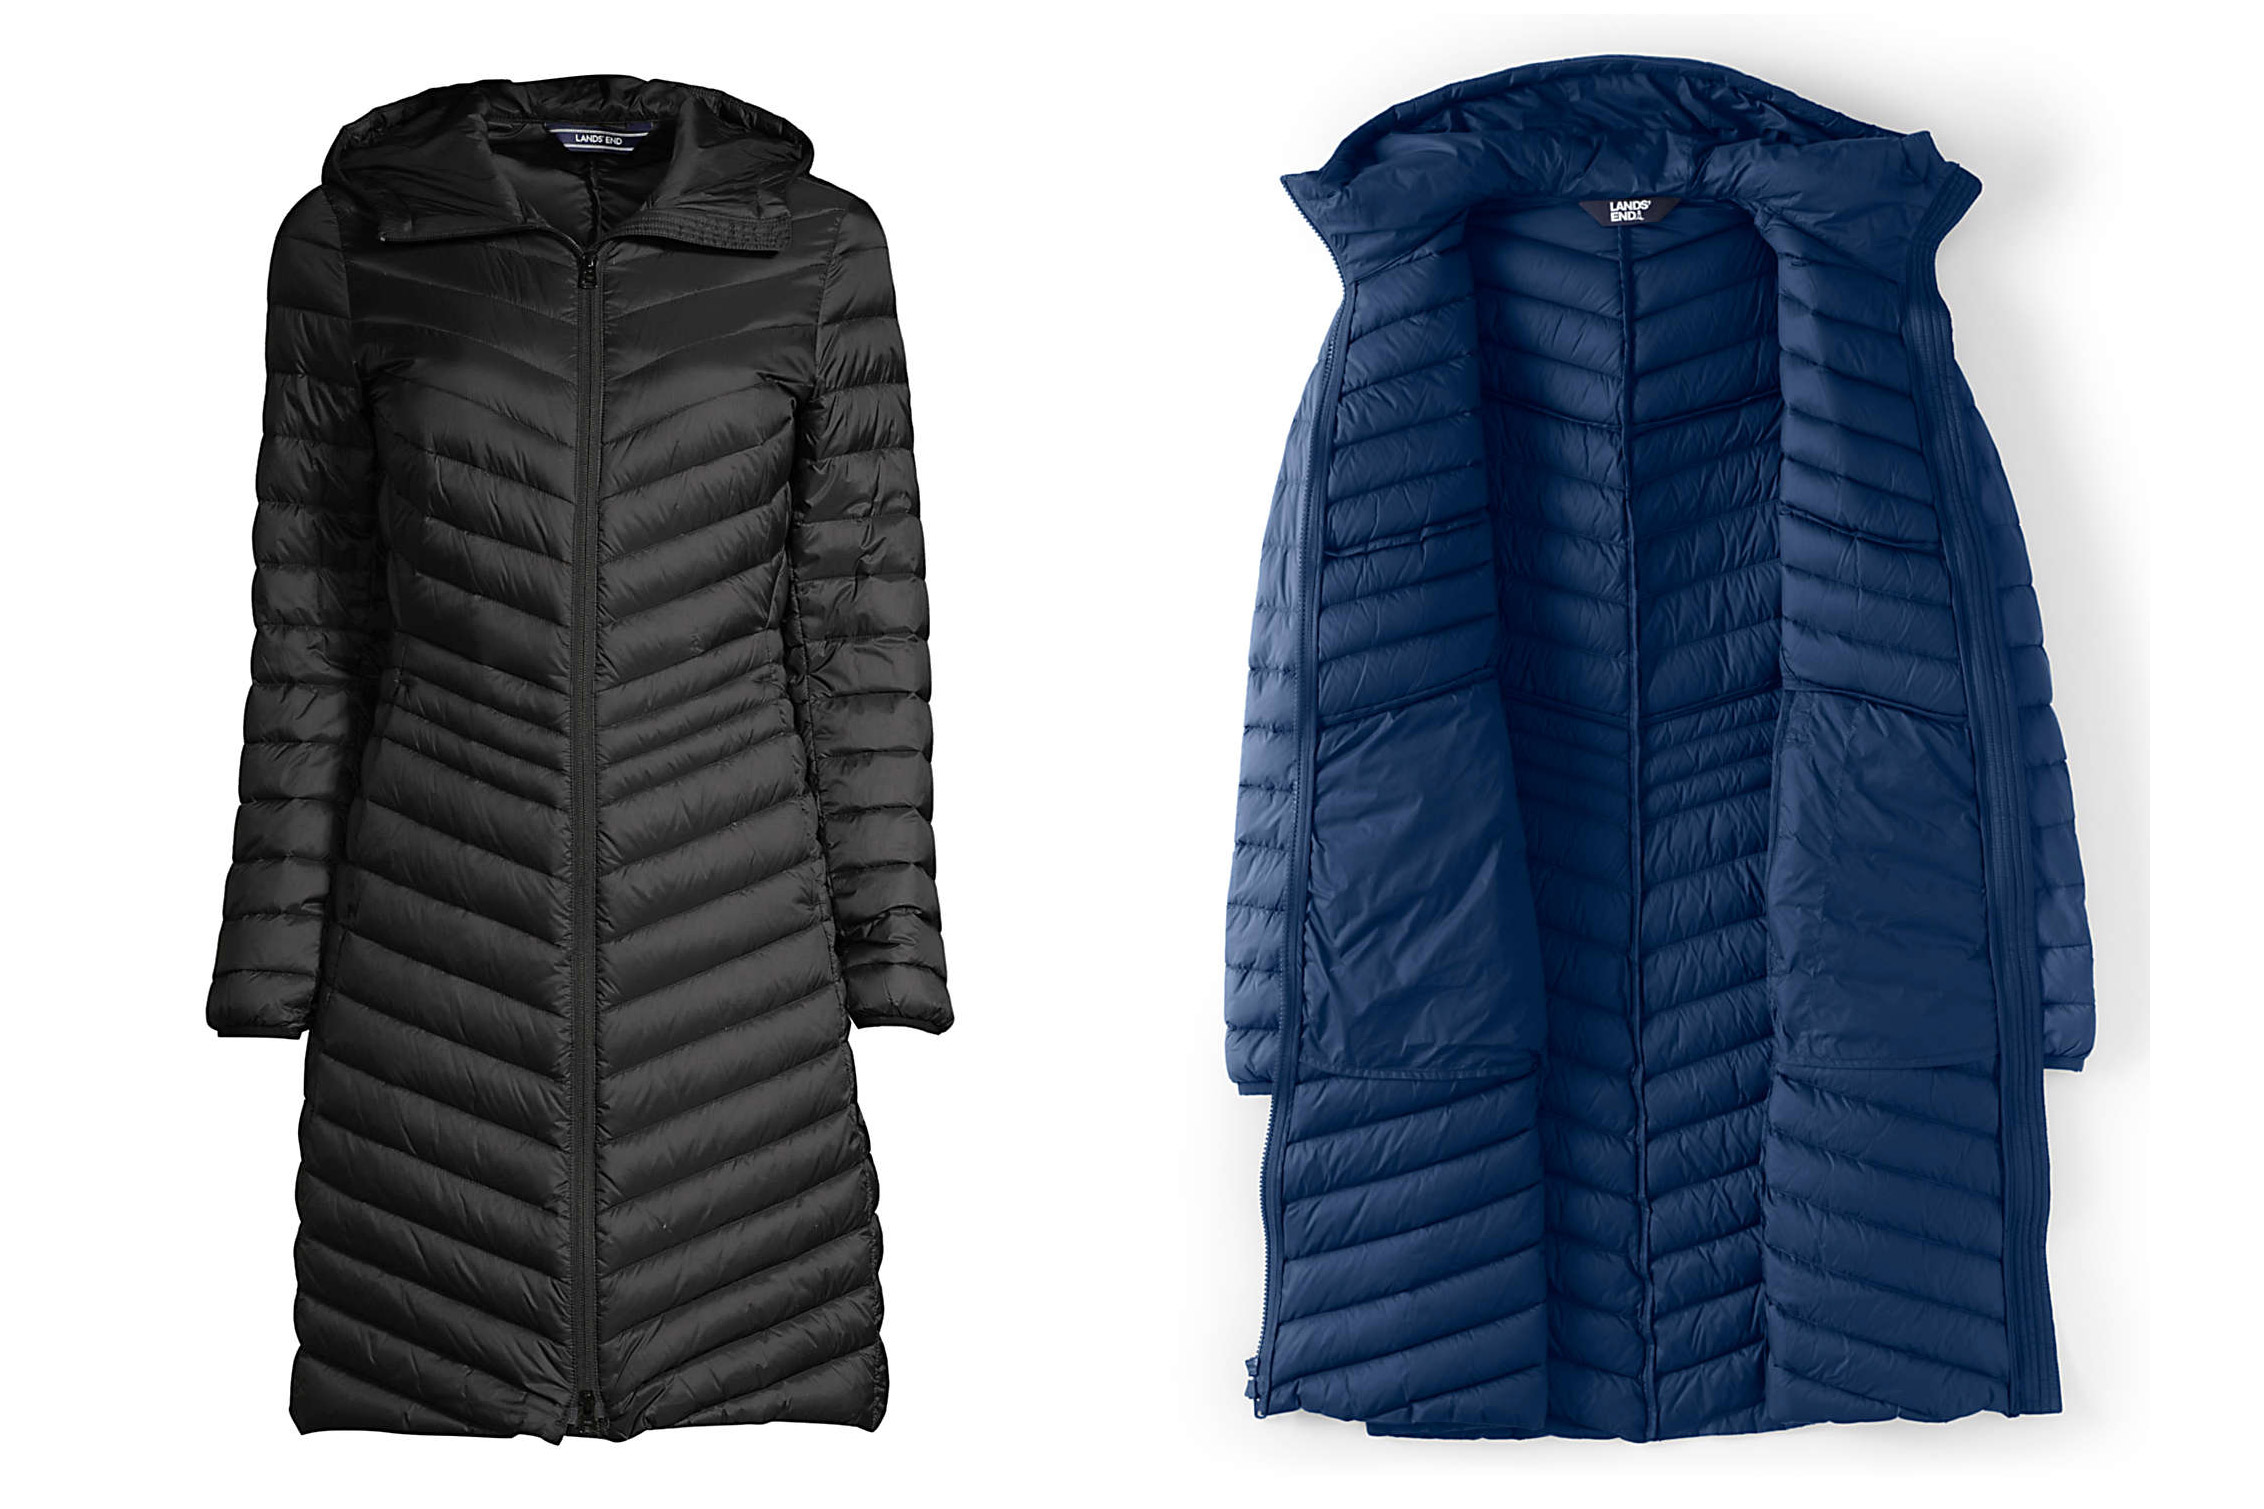 land's end ultralight packable down coat with hood